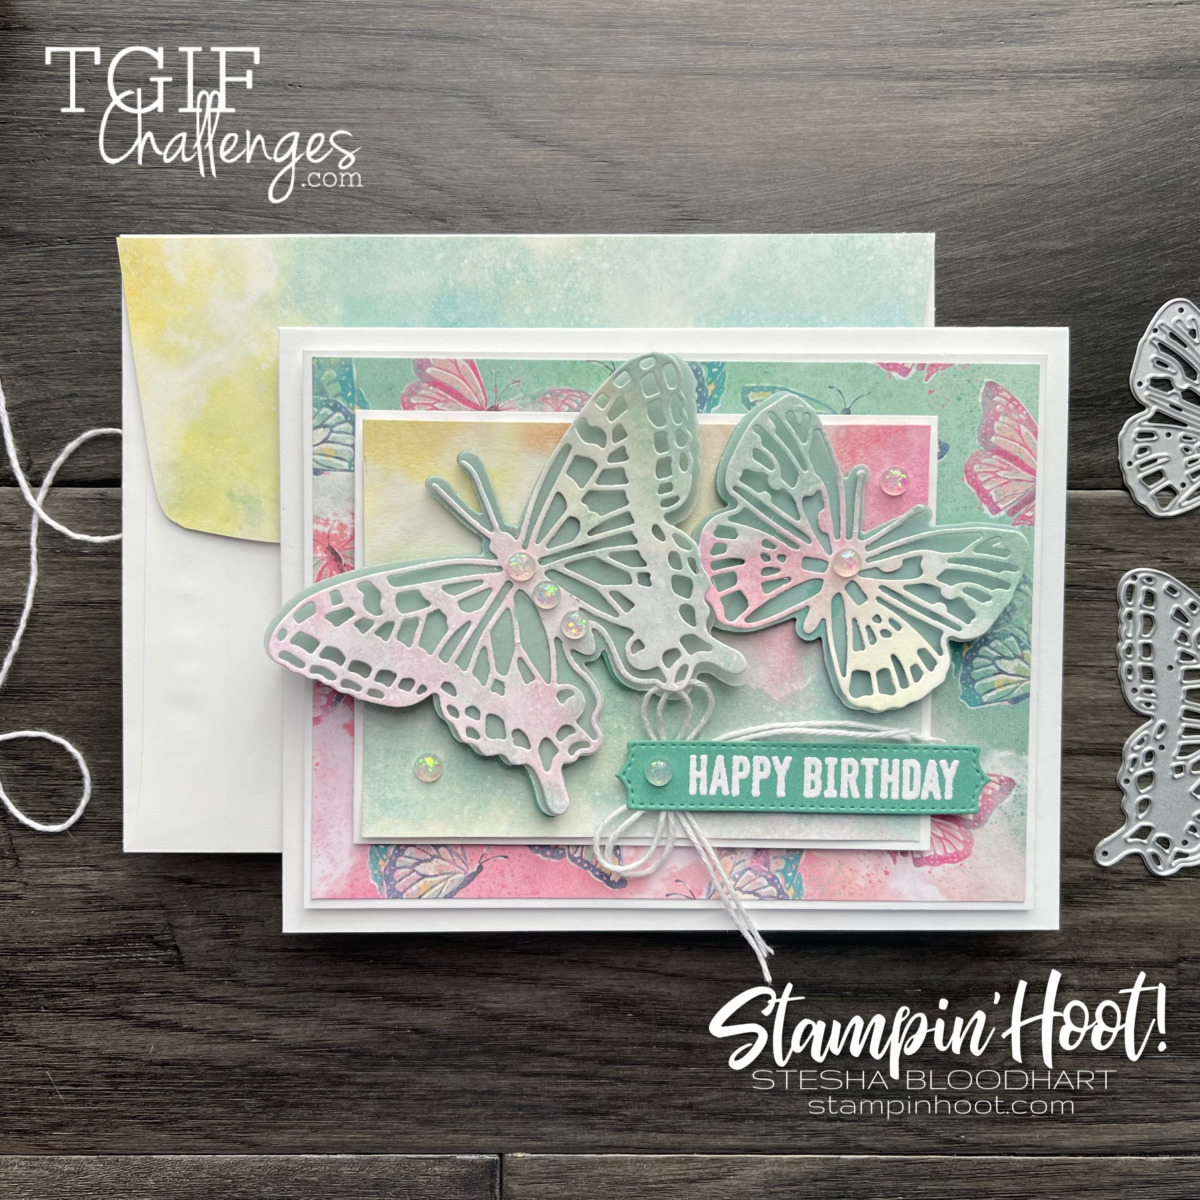 Butterfly Bouquet Bundle from Stampin' Up! Card by Stesha Bloodhart, Stampin' Hoot! #tgifc303